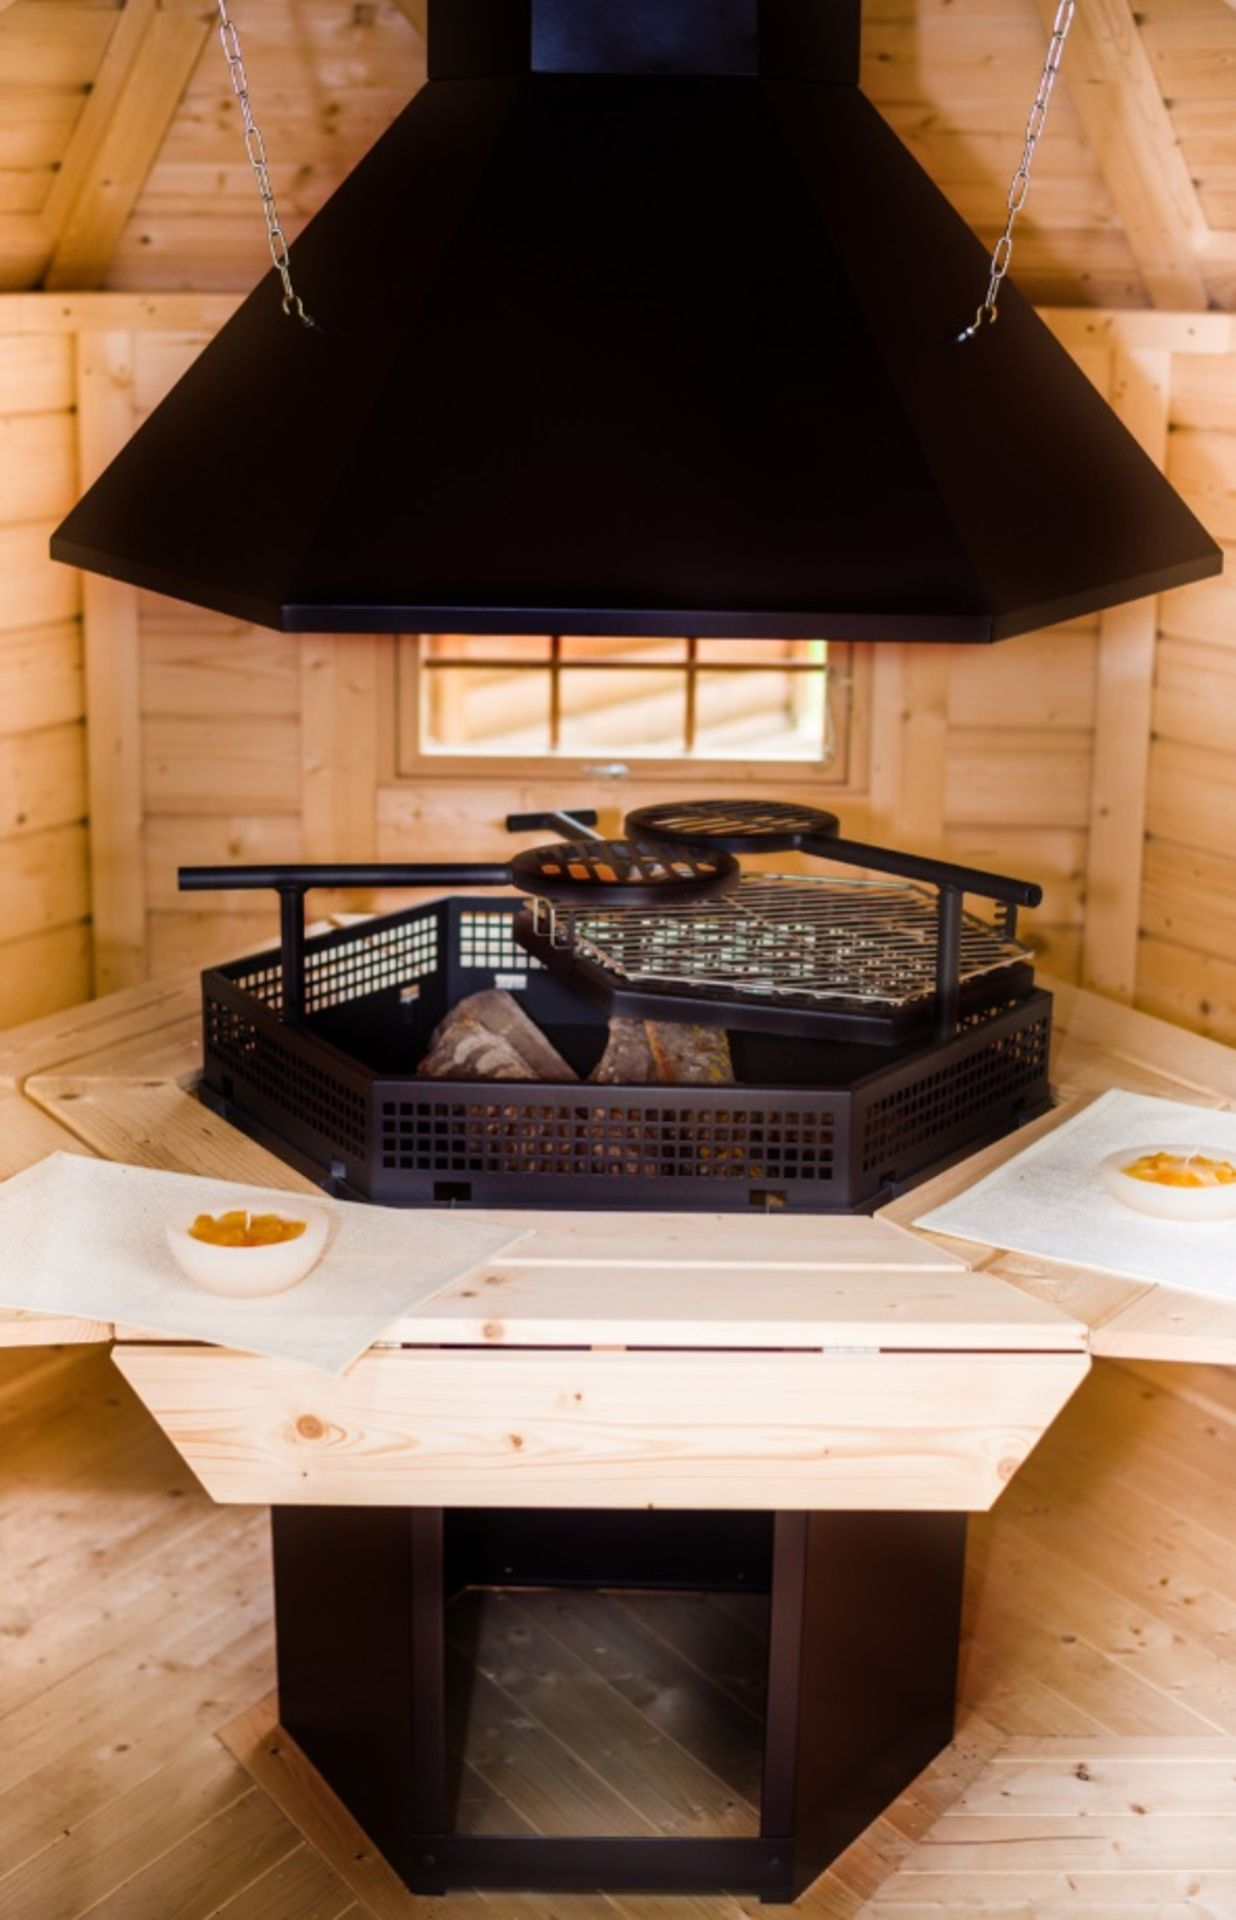 Lot 18009 - V Brand New 4.5m sq Grill Cabin - Inside Grill With Cooking Platforms & Table - Bitumen Roof